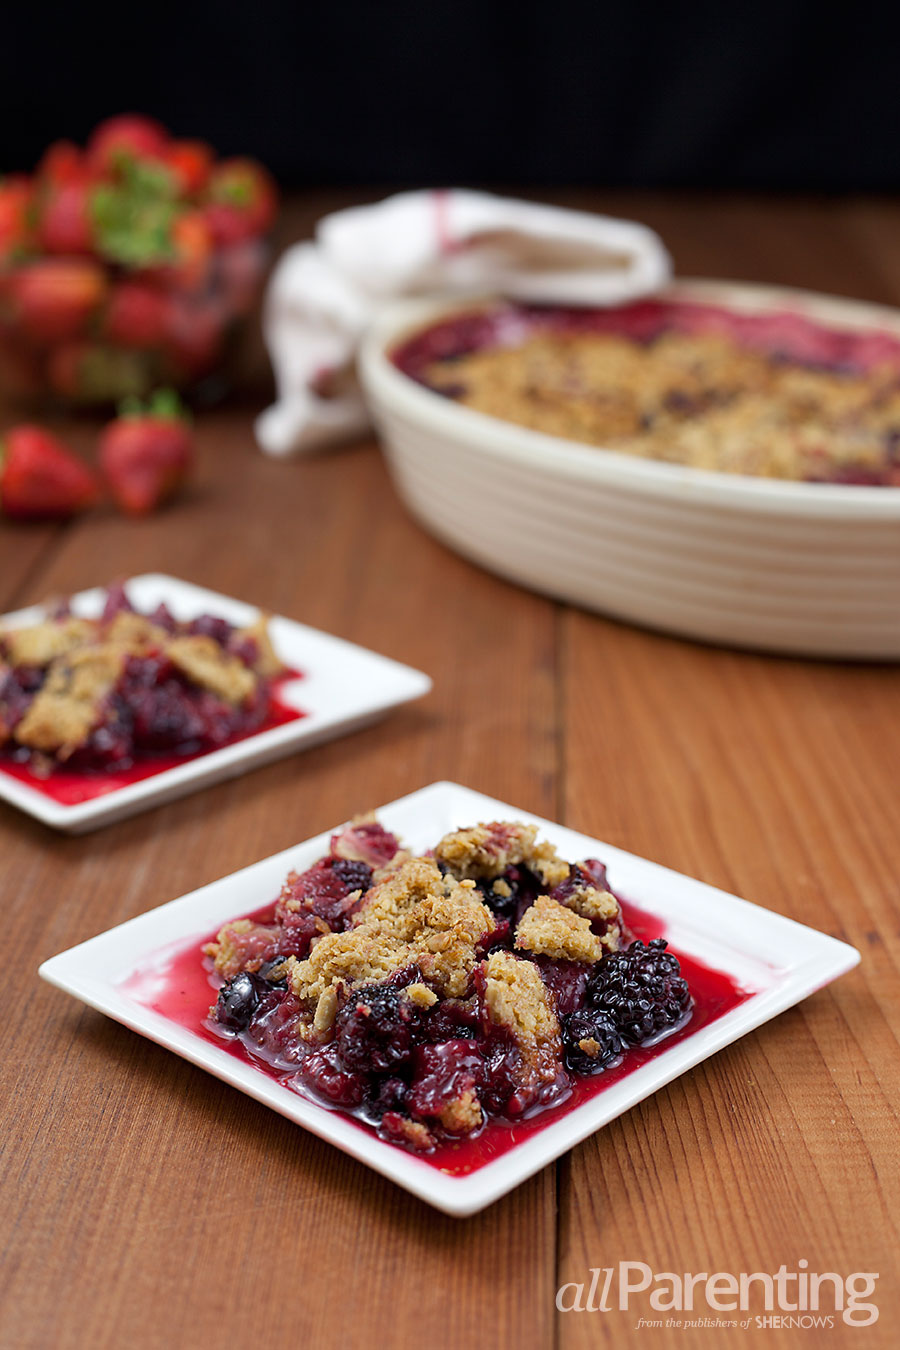 allParenting Berry fruit crisp